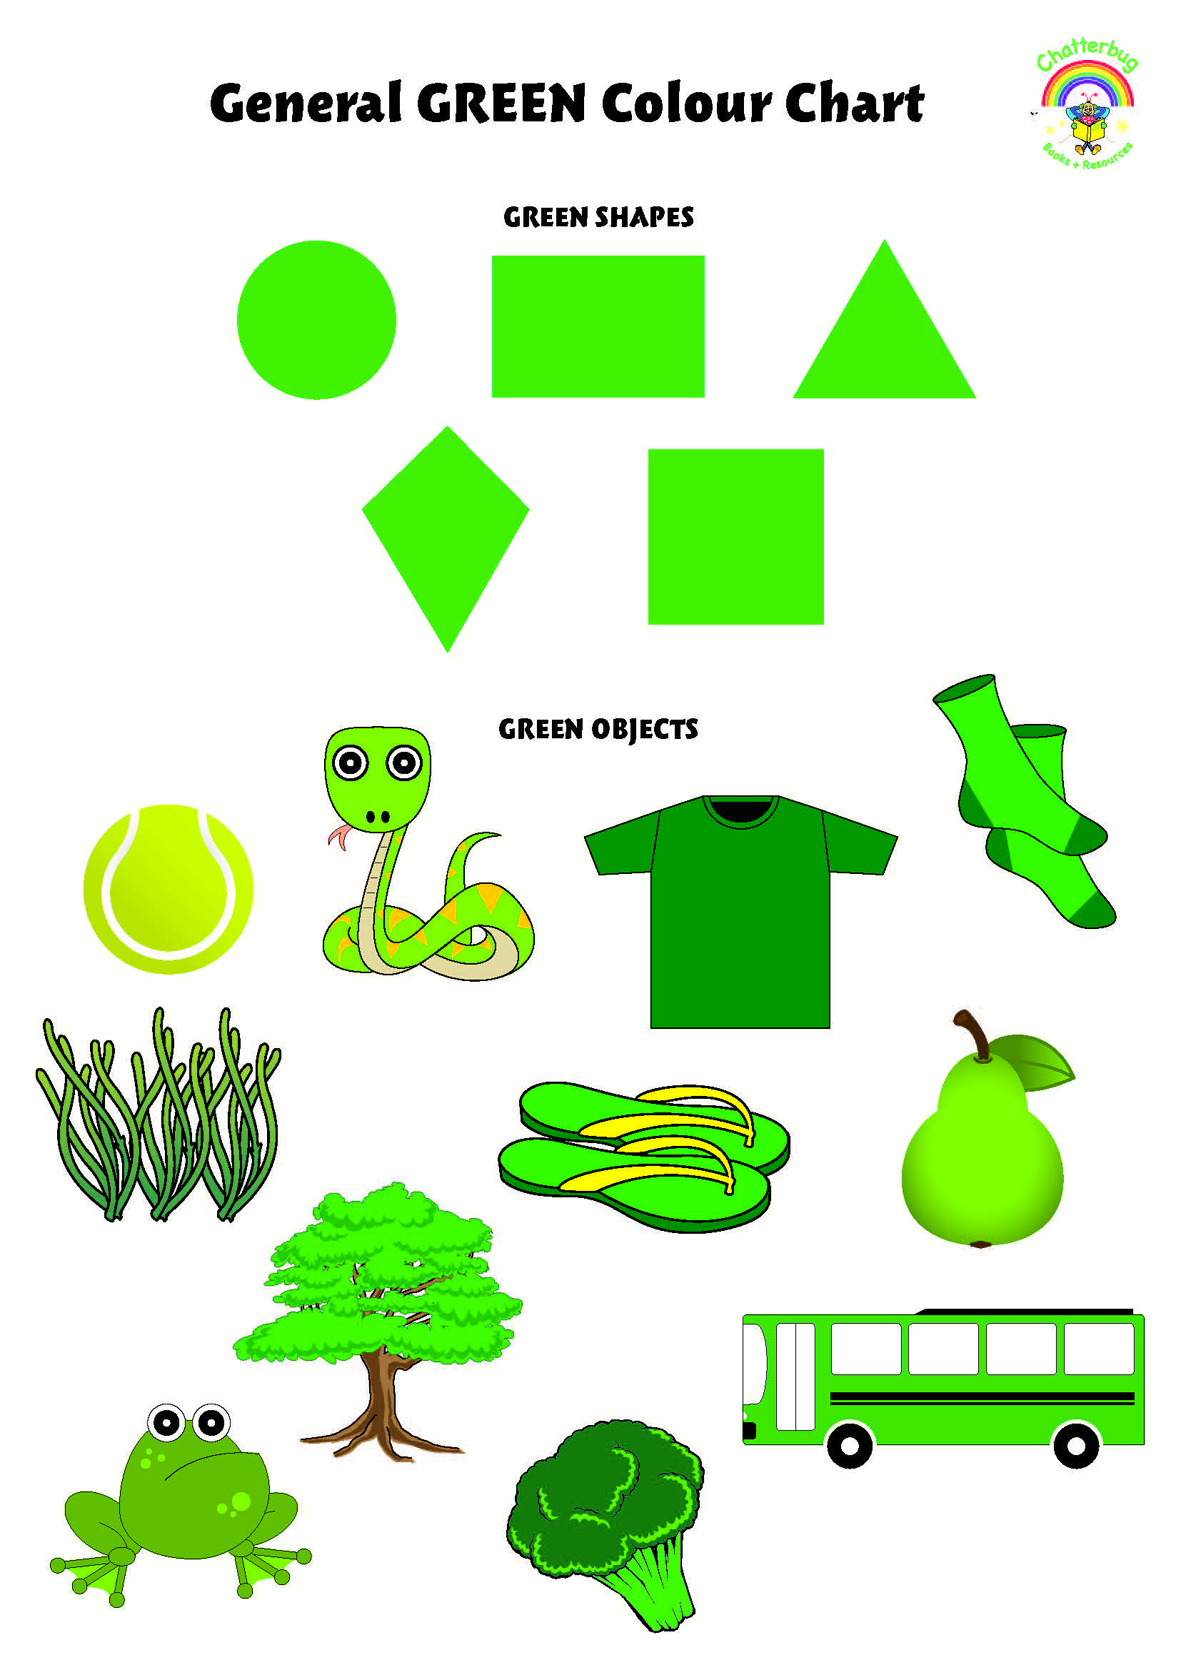 Green Colour Chart